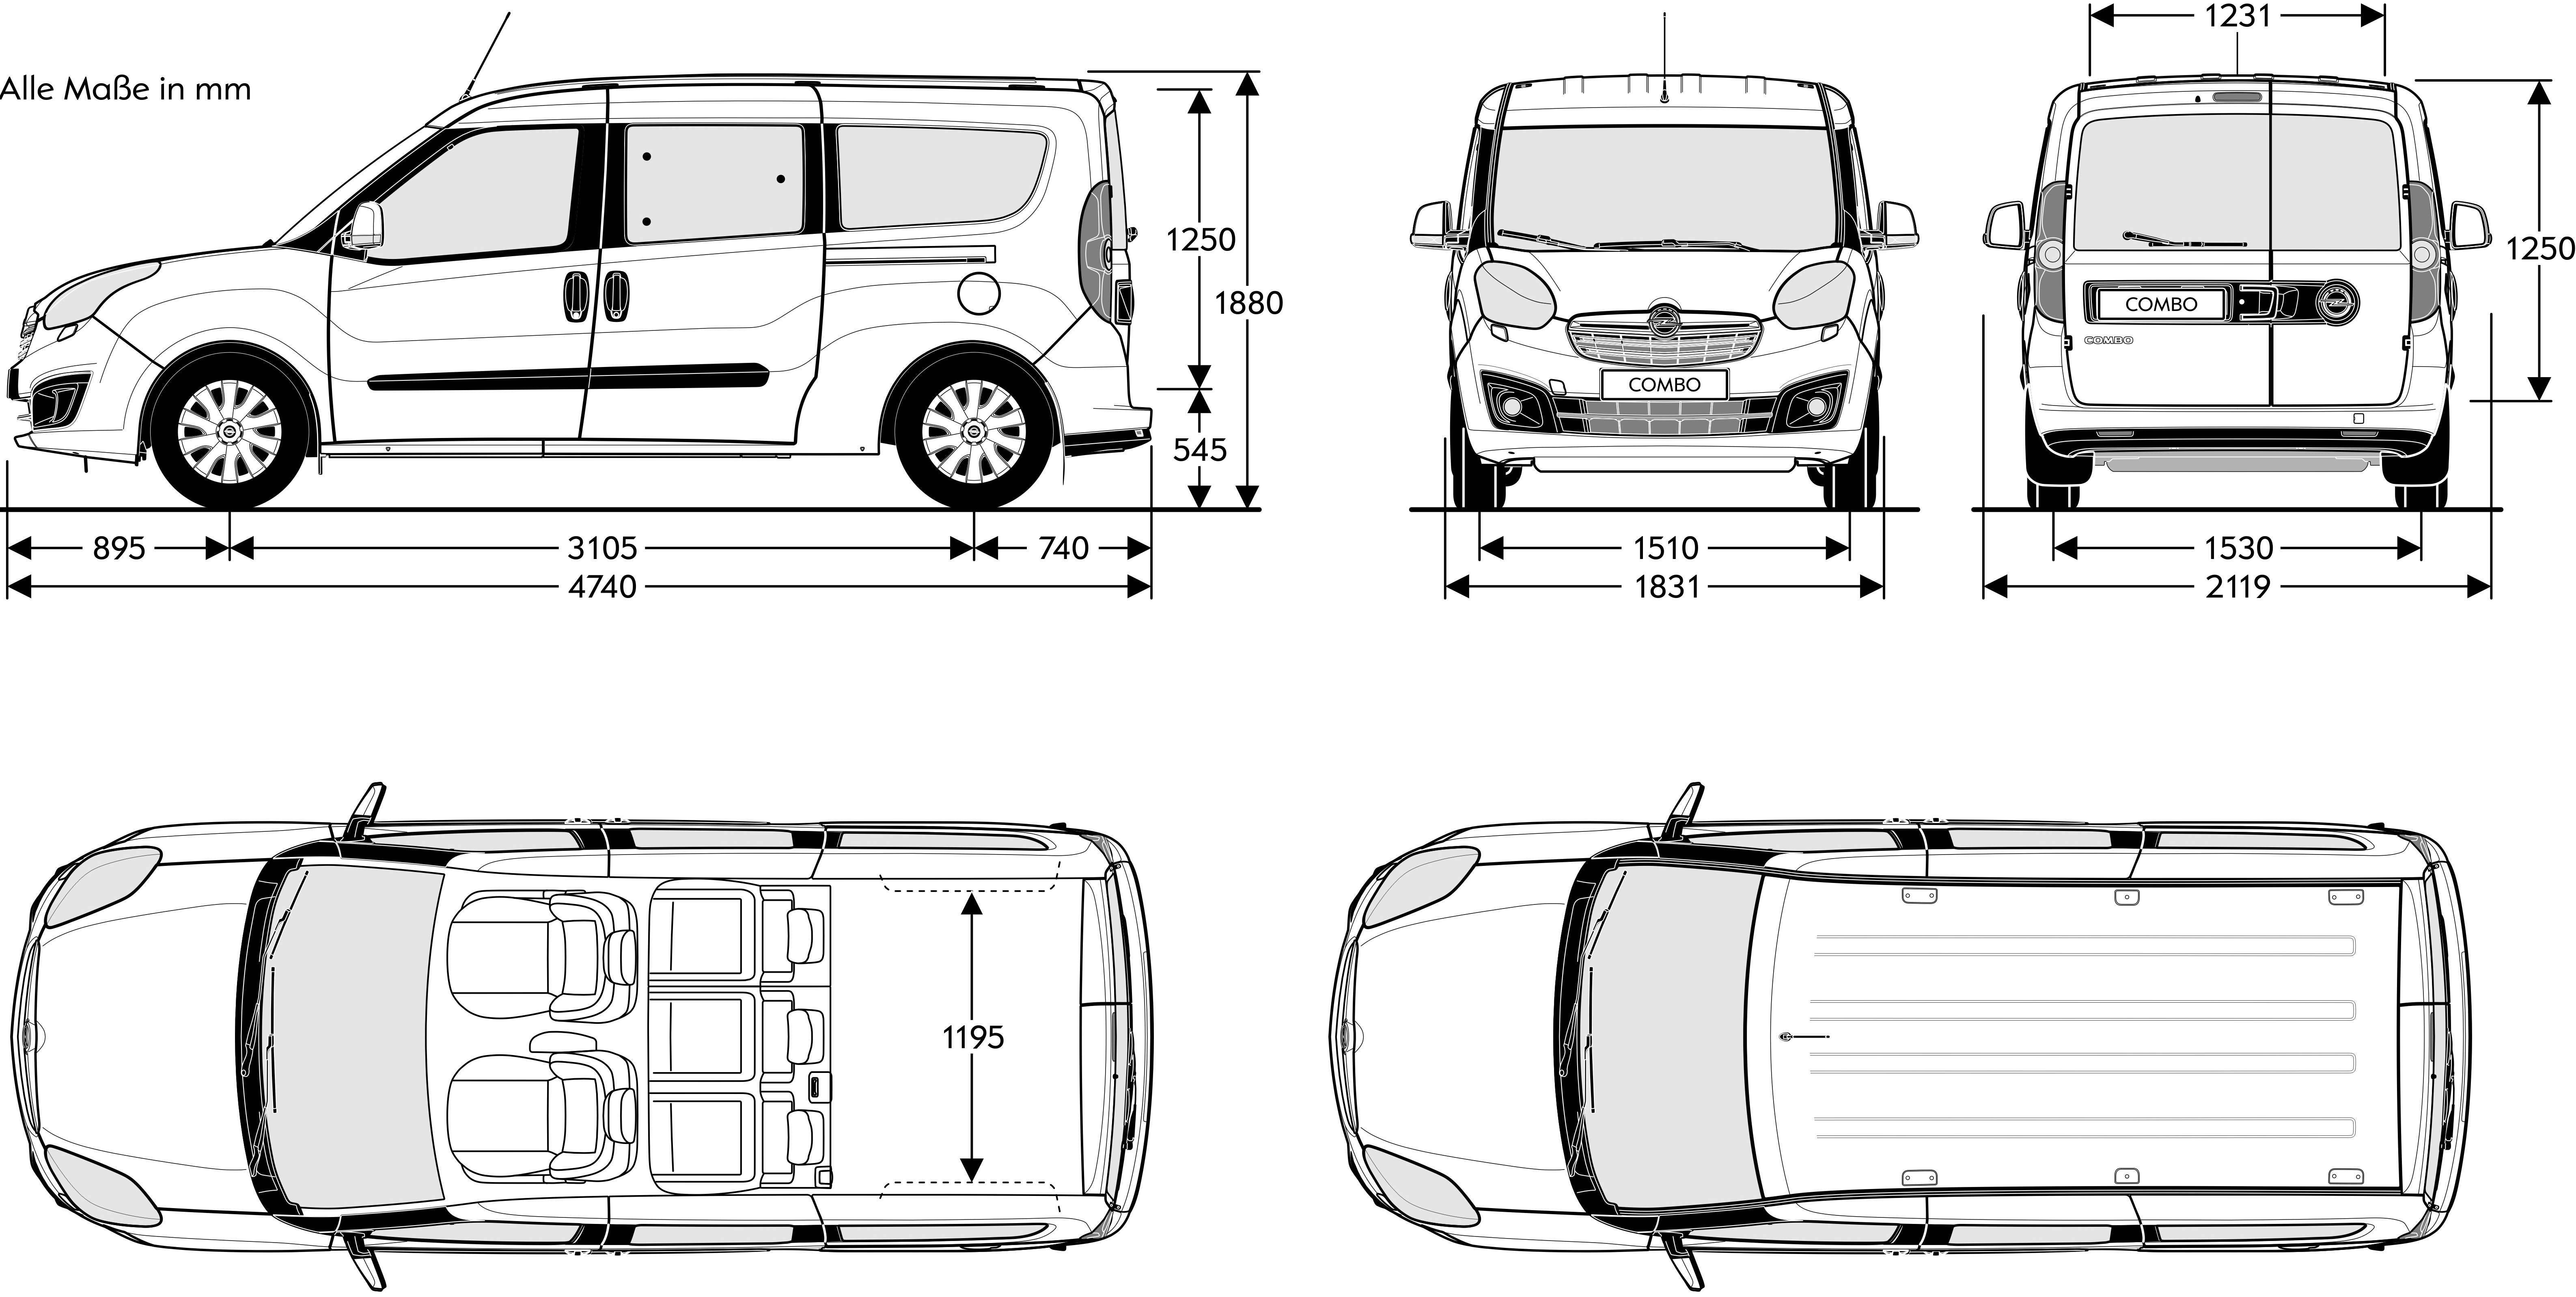 Fiat Doblo Van Dimension